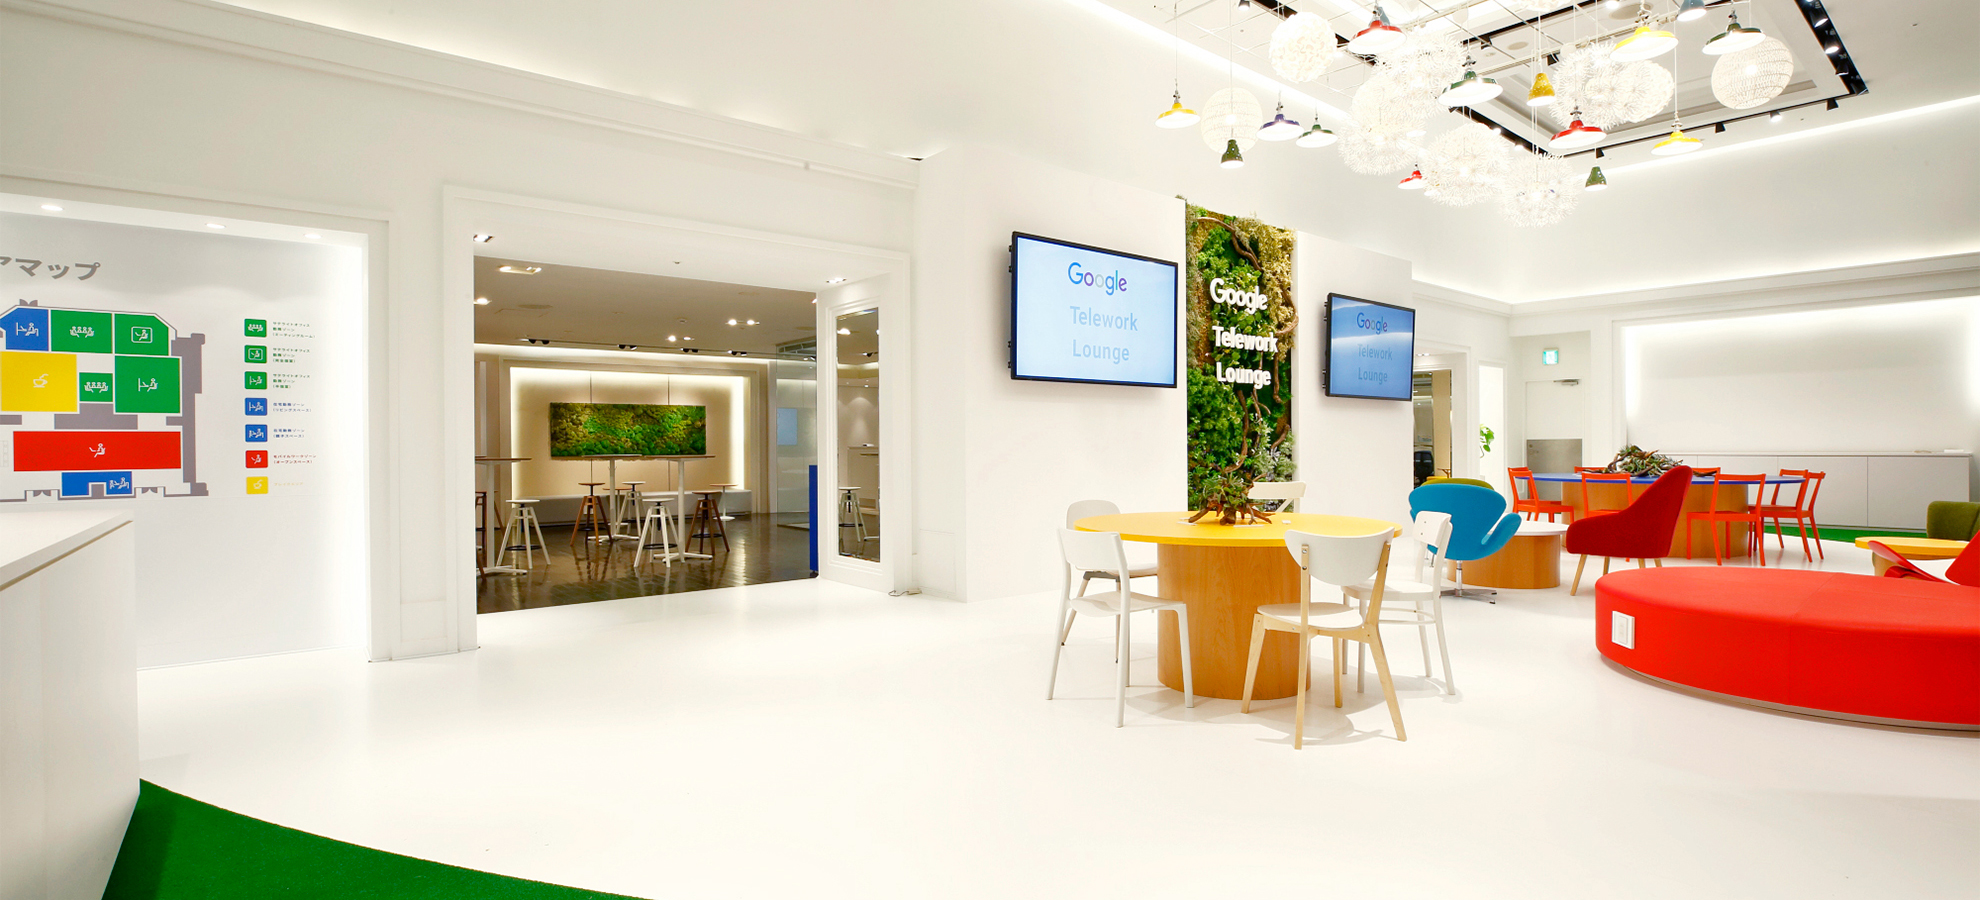 Image of Google Telework Lounge